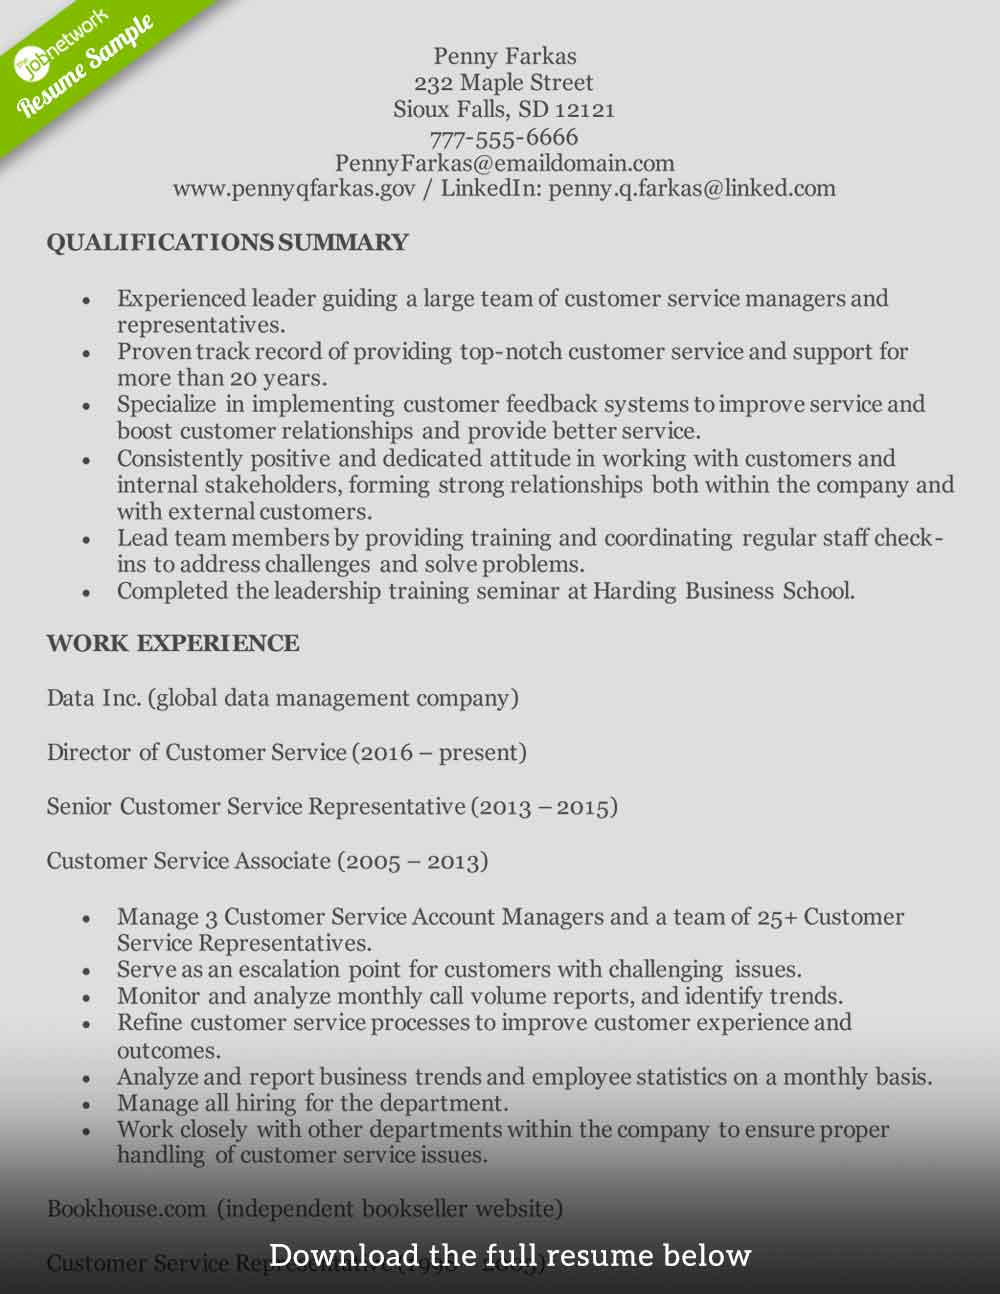 customer service resume to write the perfect one examples professional summary for Resume Customer Service Professional Summary For Resume